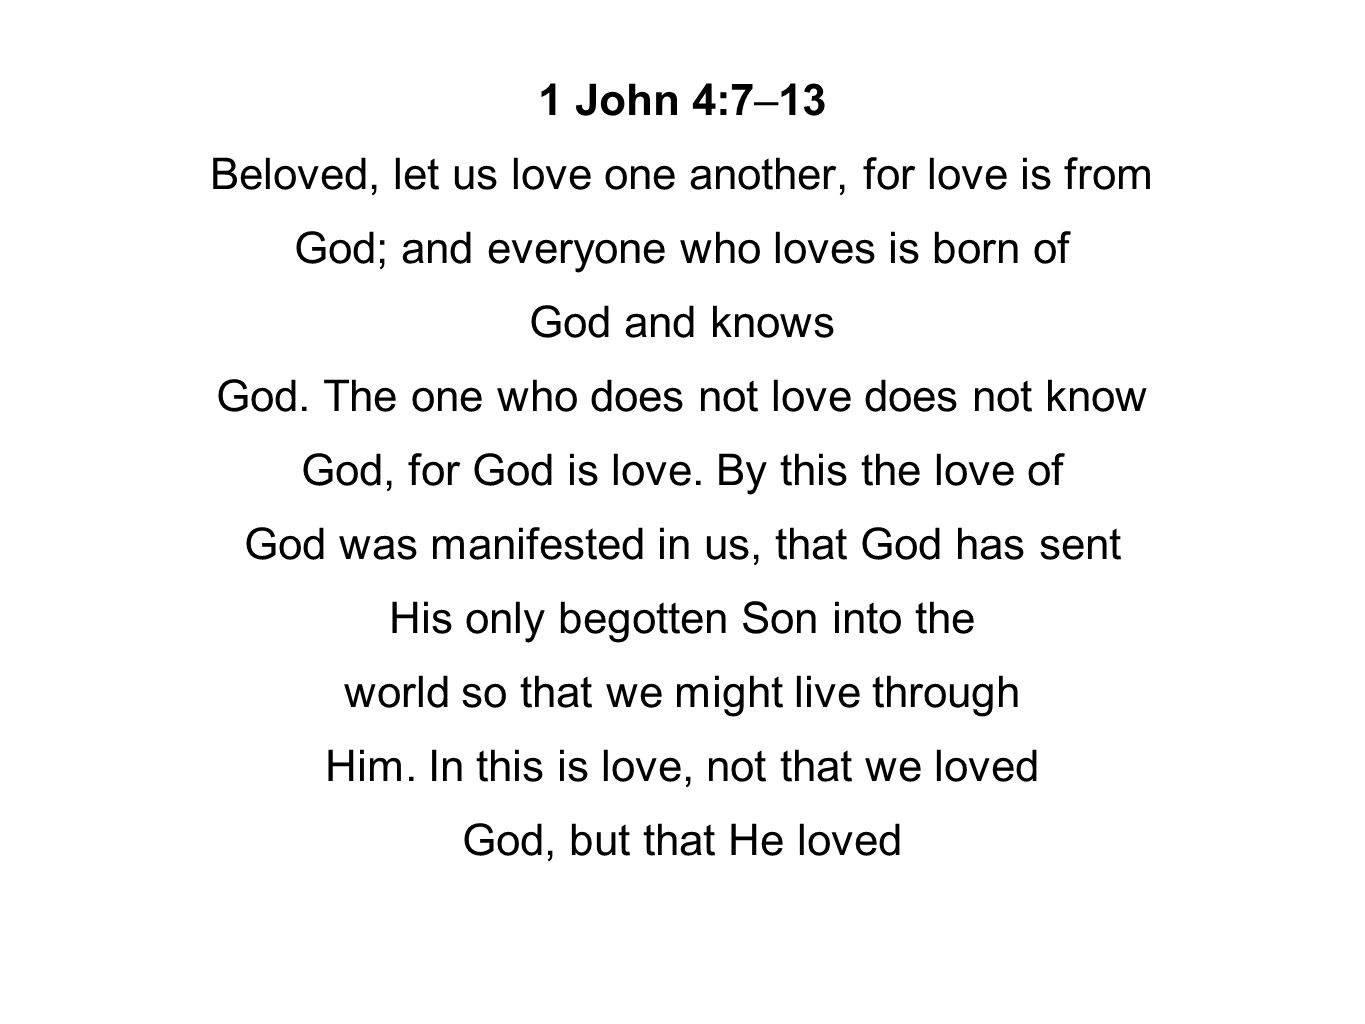 1 John 4:7–13 Beloved, let us love one another, for love is from God; and everyone who loves is born of God and knows God.